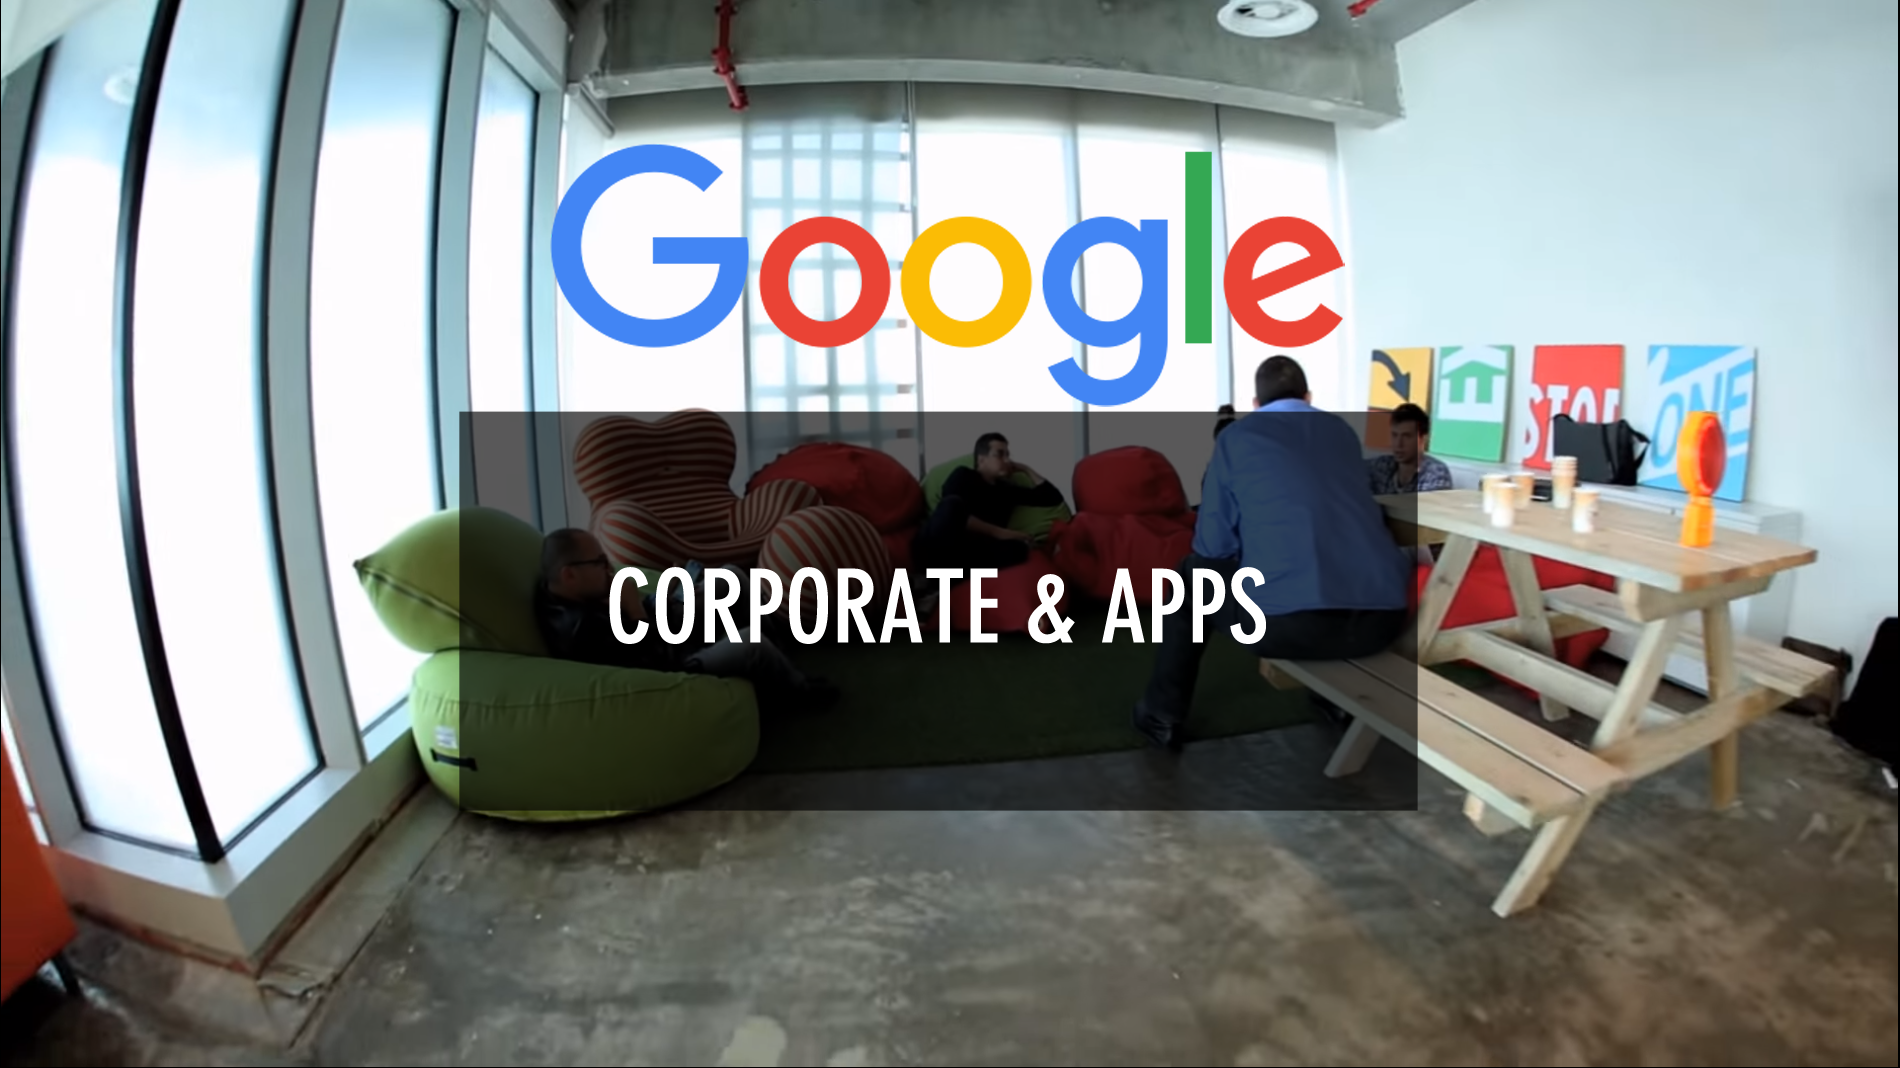 Corporate & apps